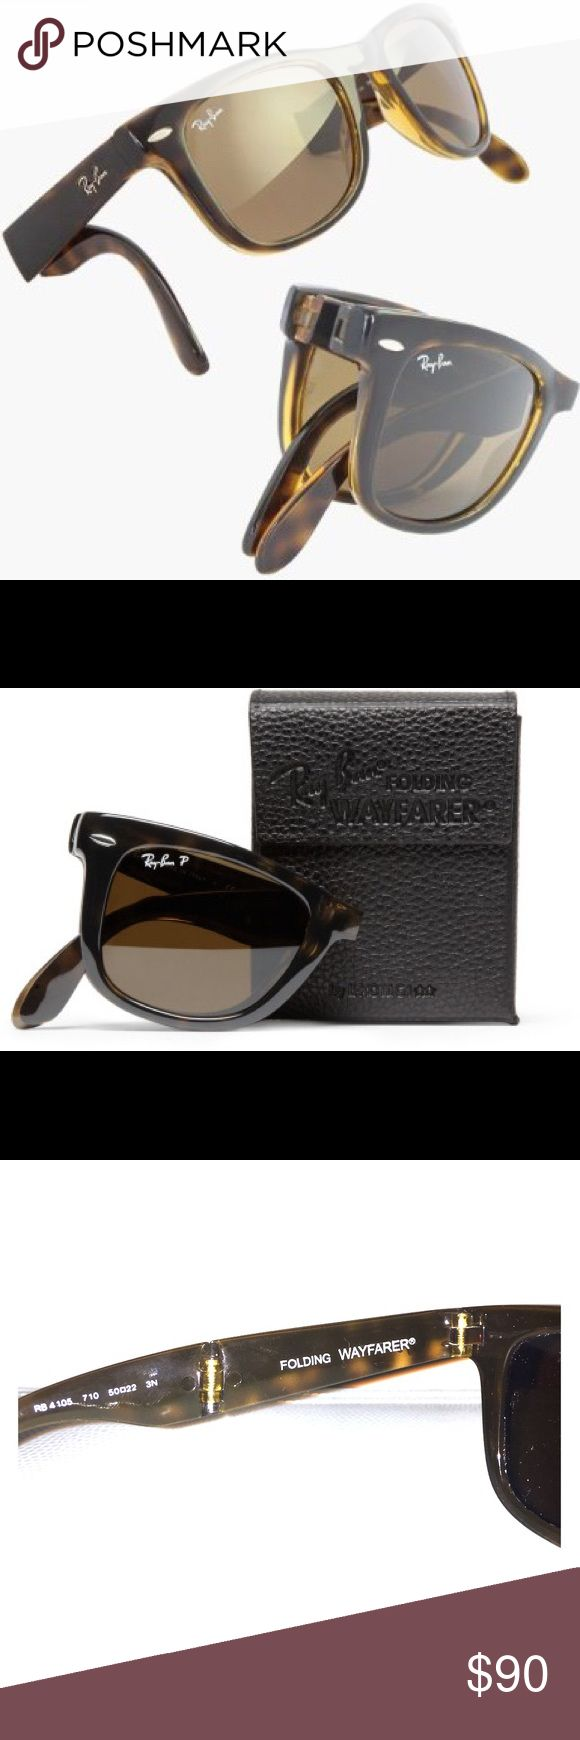 Ray- Ban Wayfarer Folding Sunglasses Ray-Ban Wayfarer Folding Classic RB4105 sunglasses provide a practical, portable and always in-style look. Modeled from the Original Wayfarer Classic , the iconic Wayfarer has been constructed into a compact, folding style letting you be practicably fabulous. Color is tortoise shell. Comes with original case and polishing cloth. Ray-Ban Accessories Sunglasses